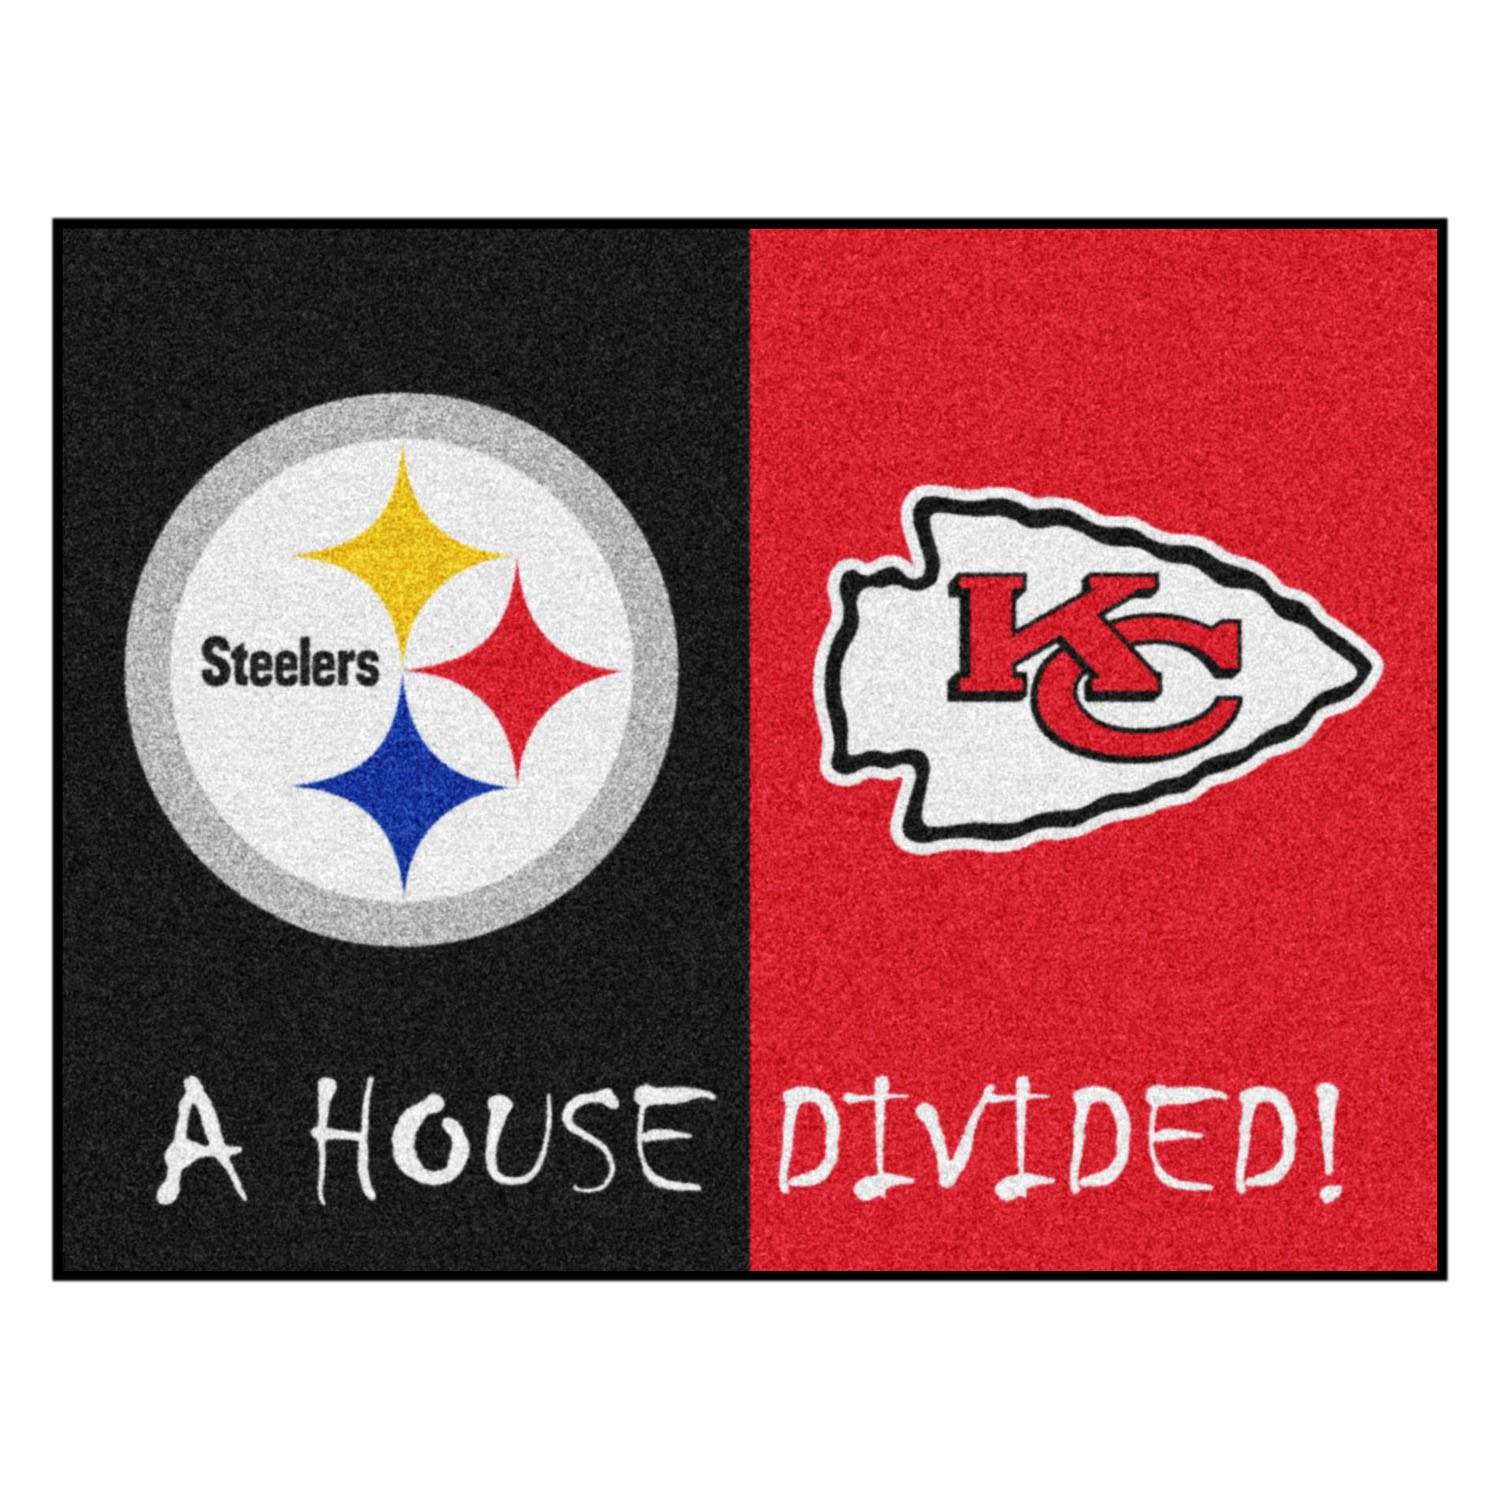 ffb212e6 FanMats® - NFL House Divided Floor Mats